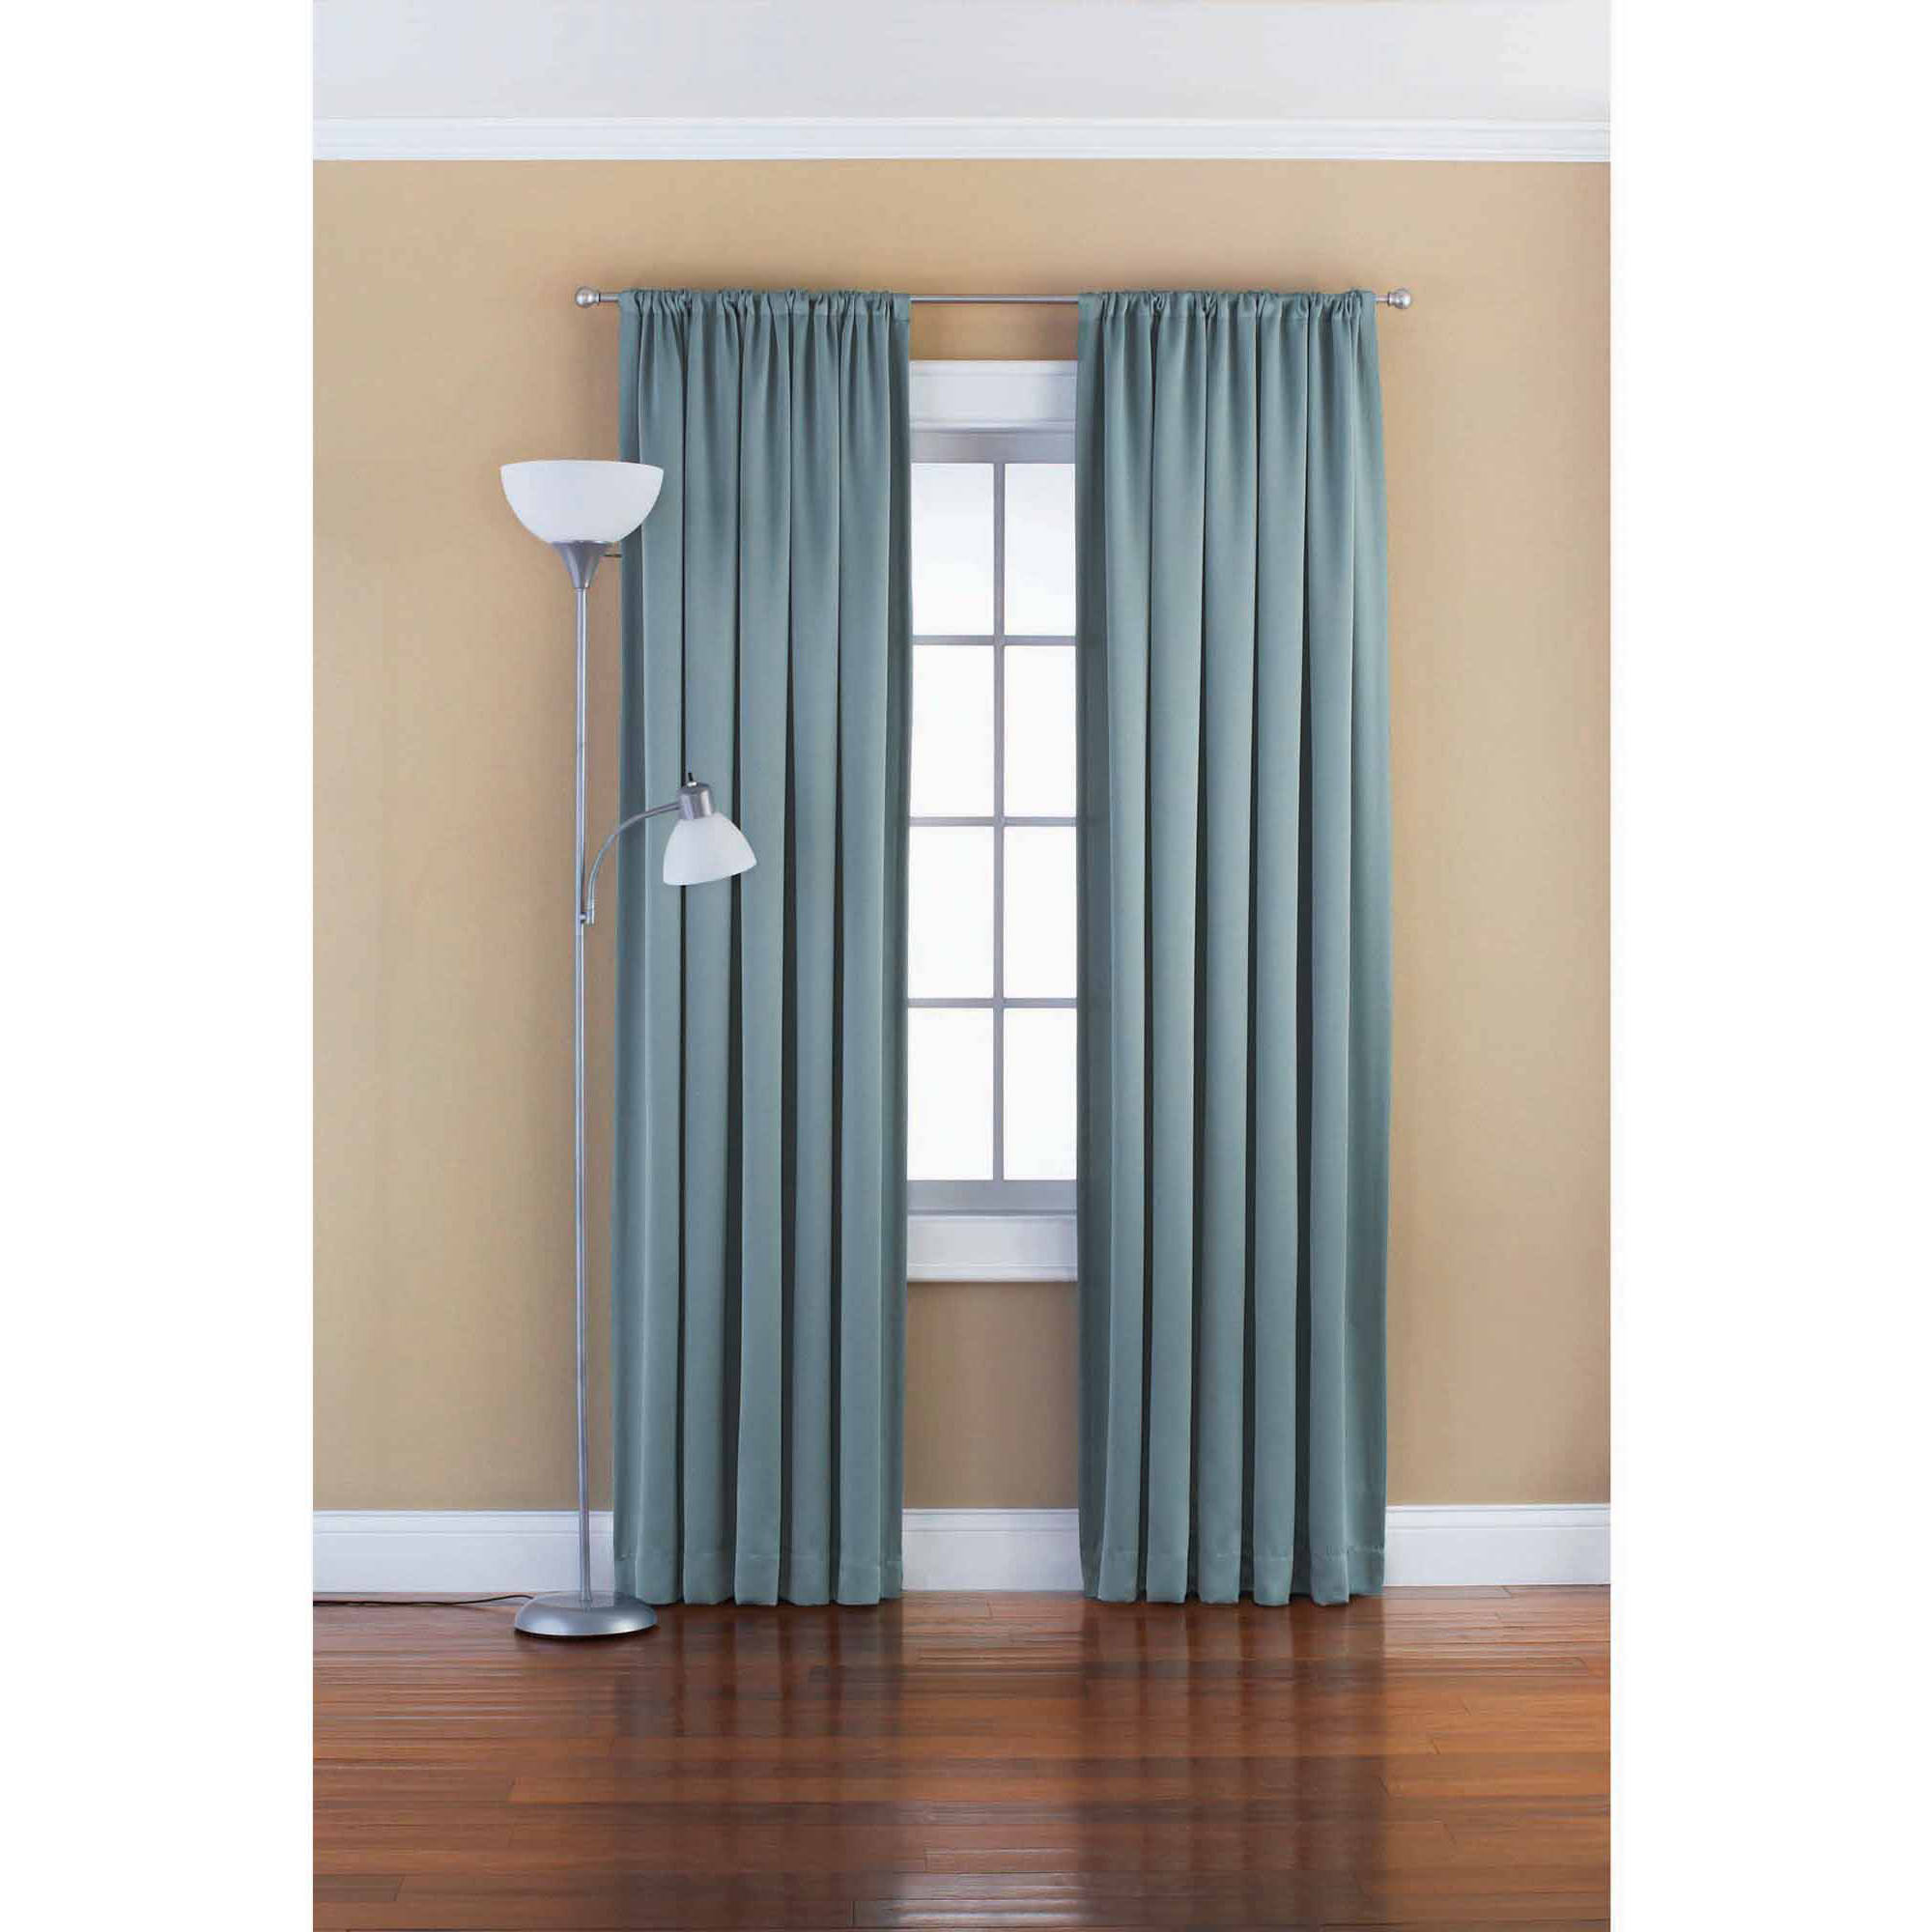 Soundproof Curtain | Blinds Target | Soundproof Curtains Target